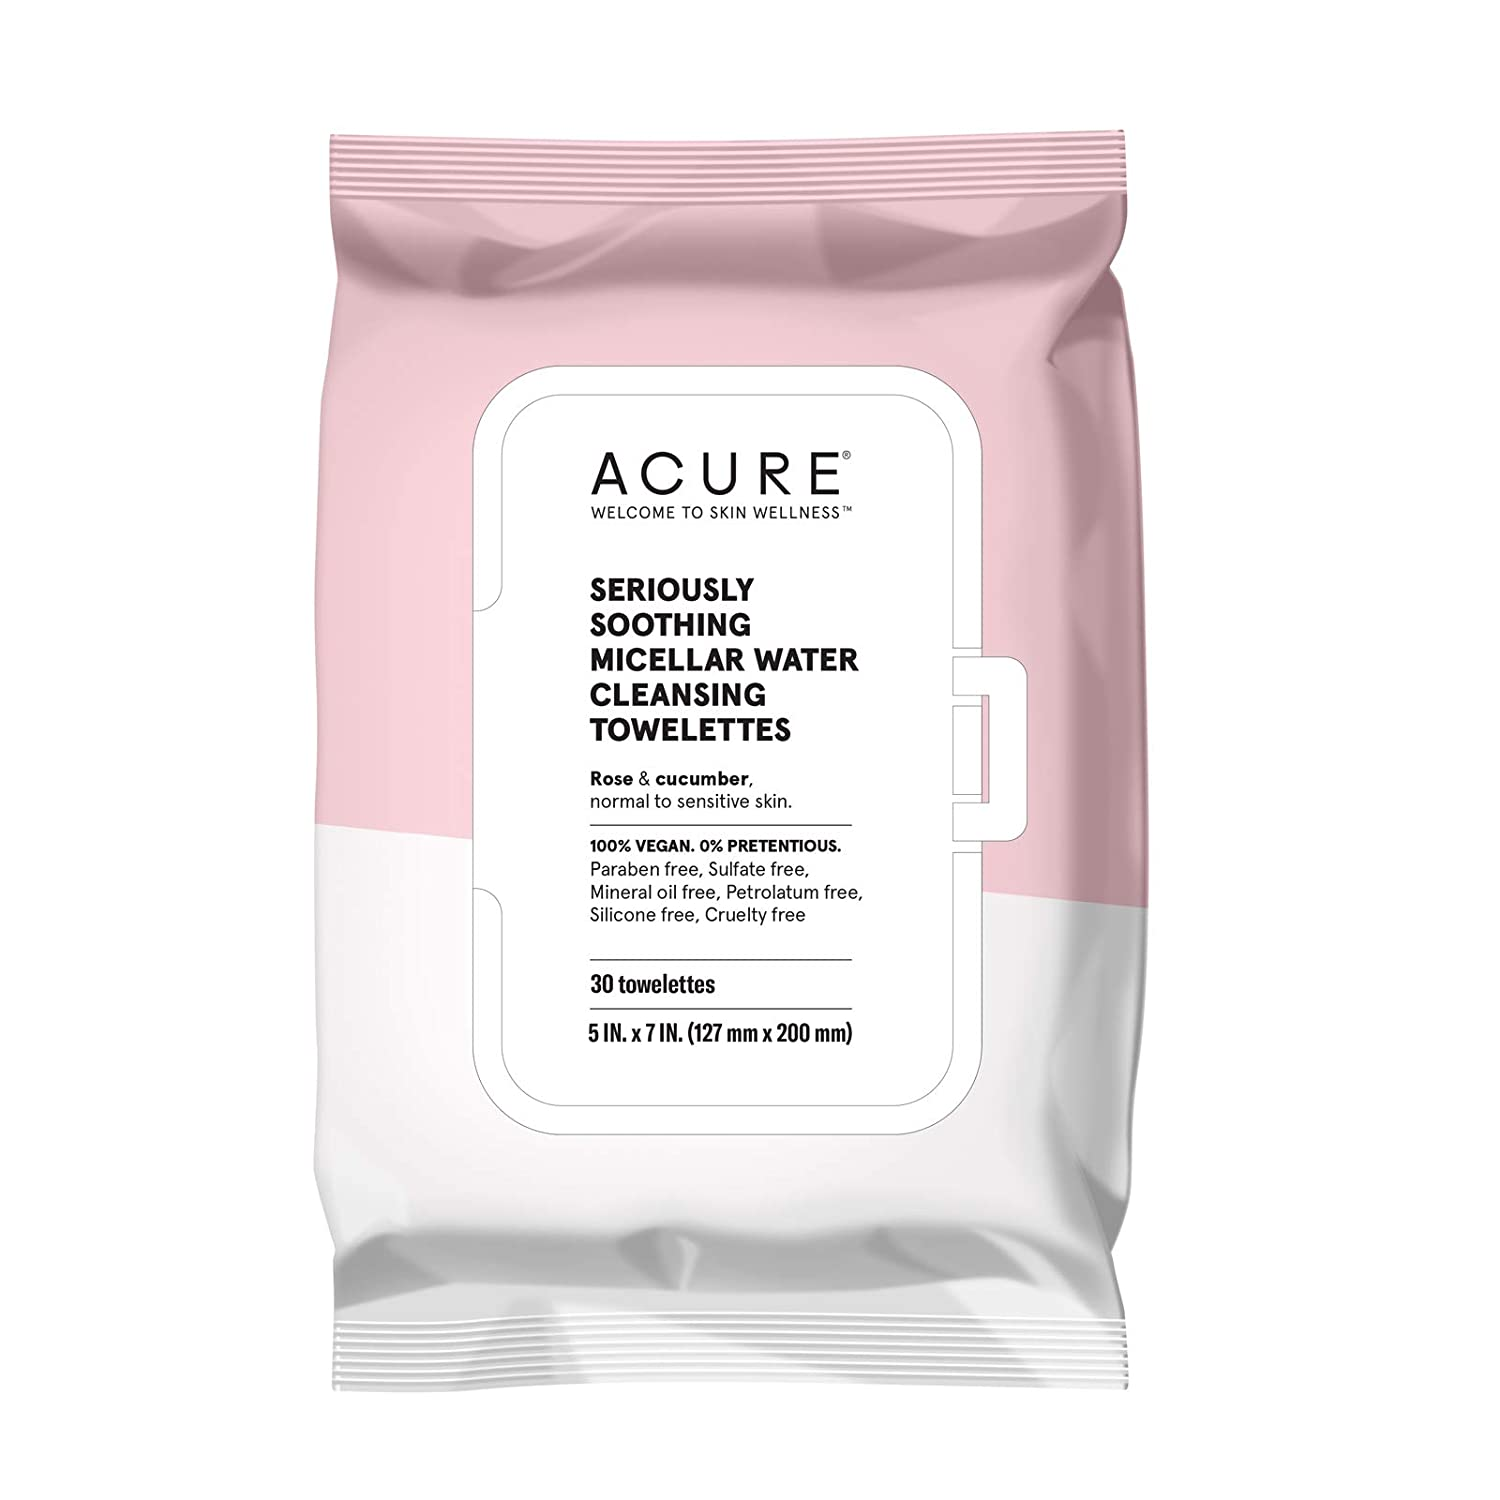 ACURE Seriously Soothing Micellar Water Towelettes | 100% Vegan | For Dry to Sensitive Skin | Rose & Cucumber - Gently Removes Makeup and Cleanses | Simply Wipe & Go | 1 Pack